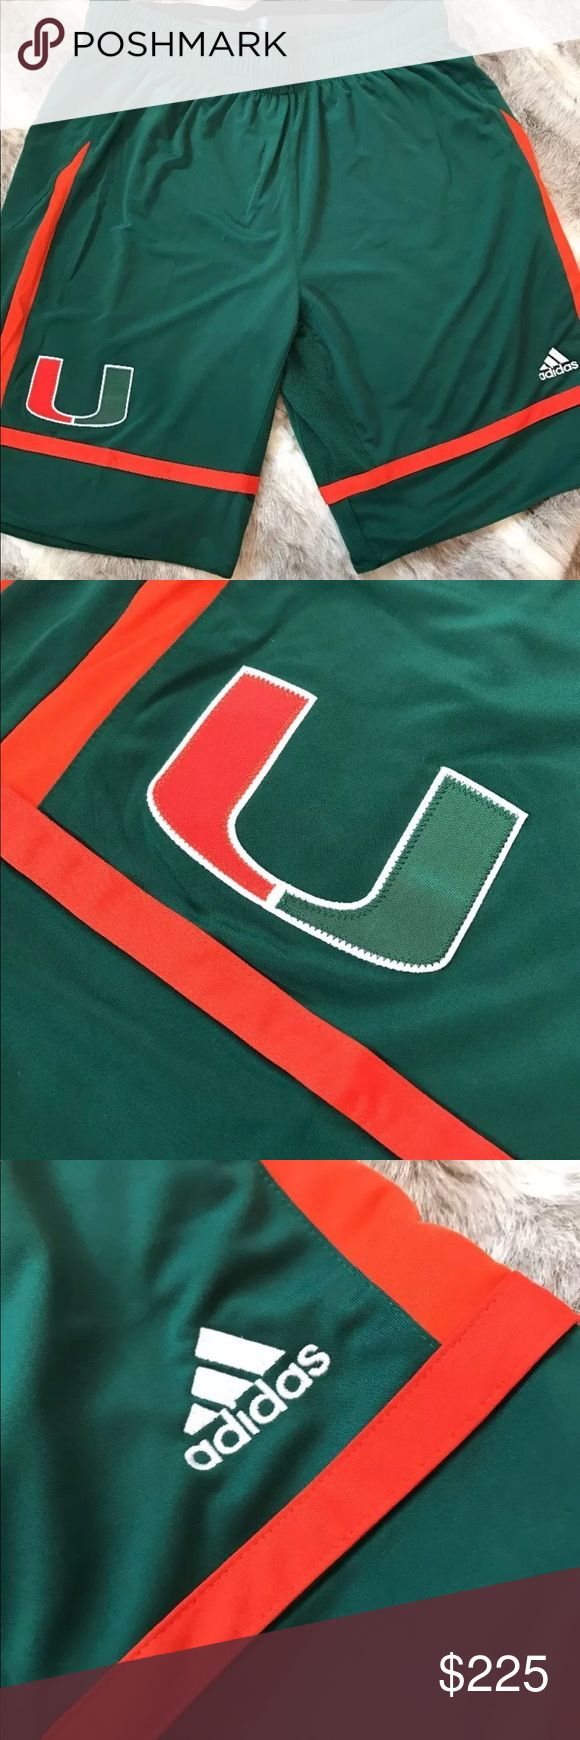 Miami Hurricane Team Issued Game Shorts NWT RARE Brand new with tags team issue Miami Hurricane basketball shorts with non slip waist.. Size large Rarely found NEW! adidas Shorts Athletic